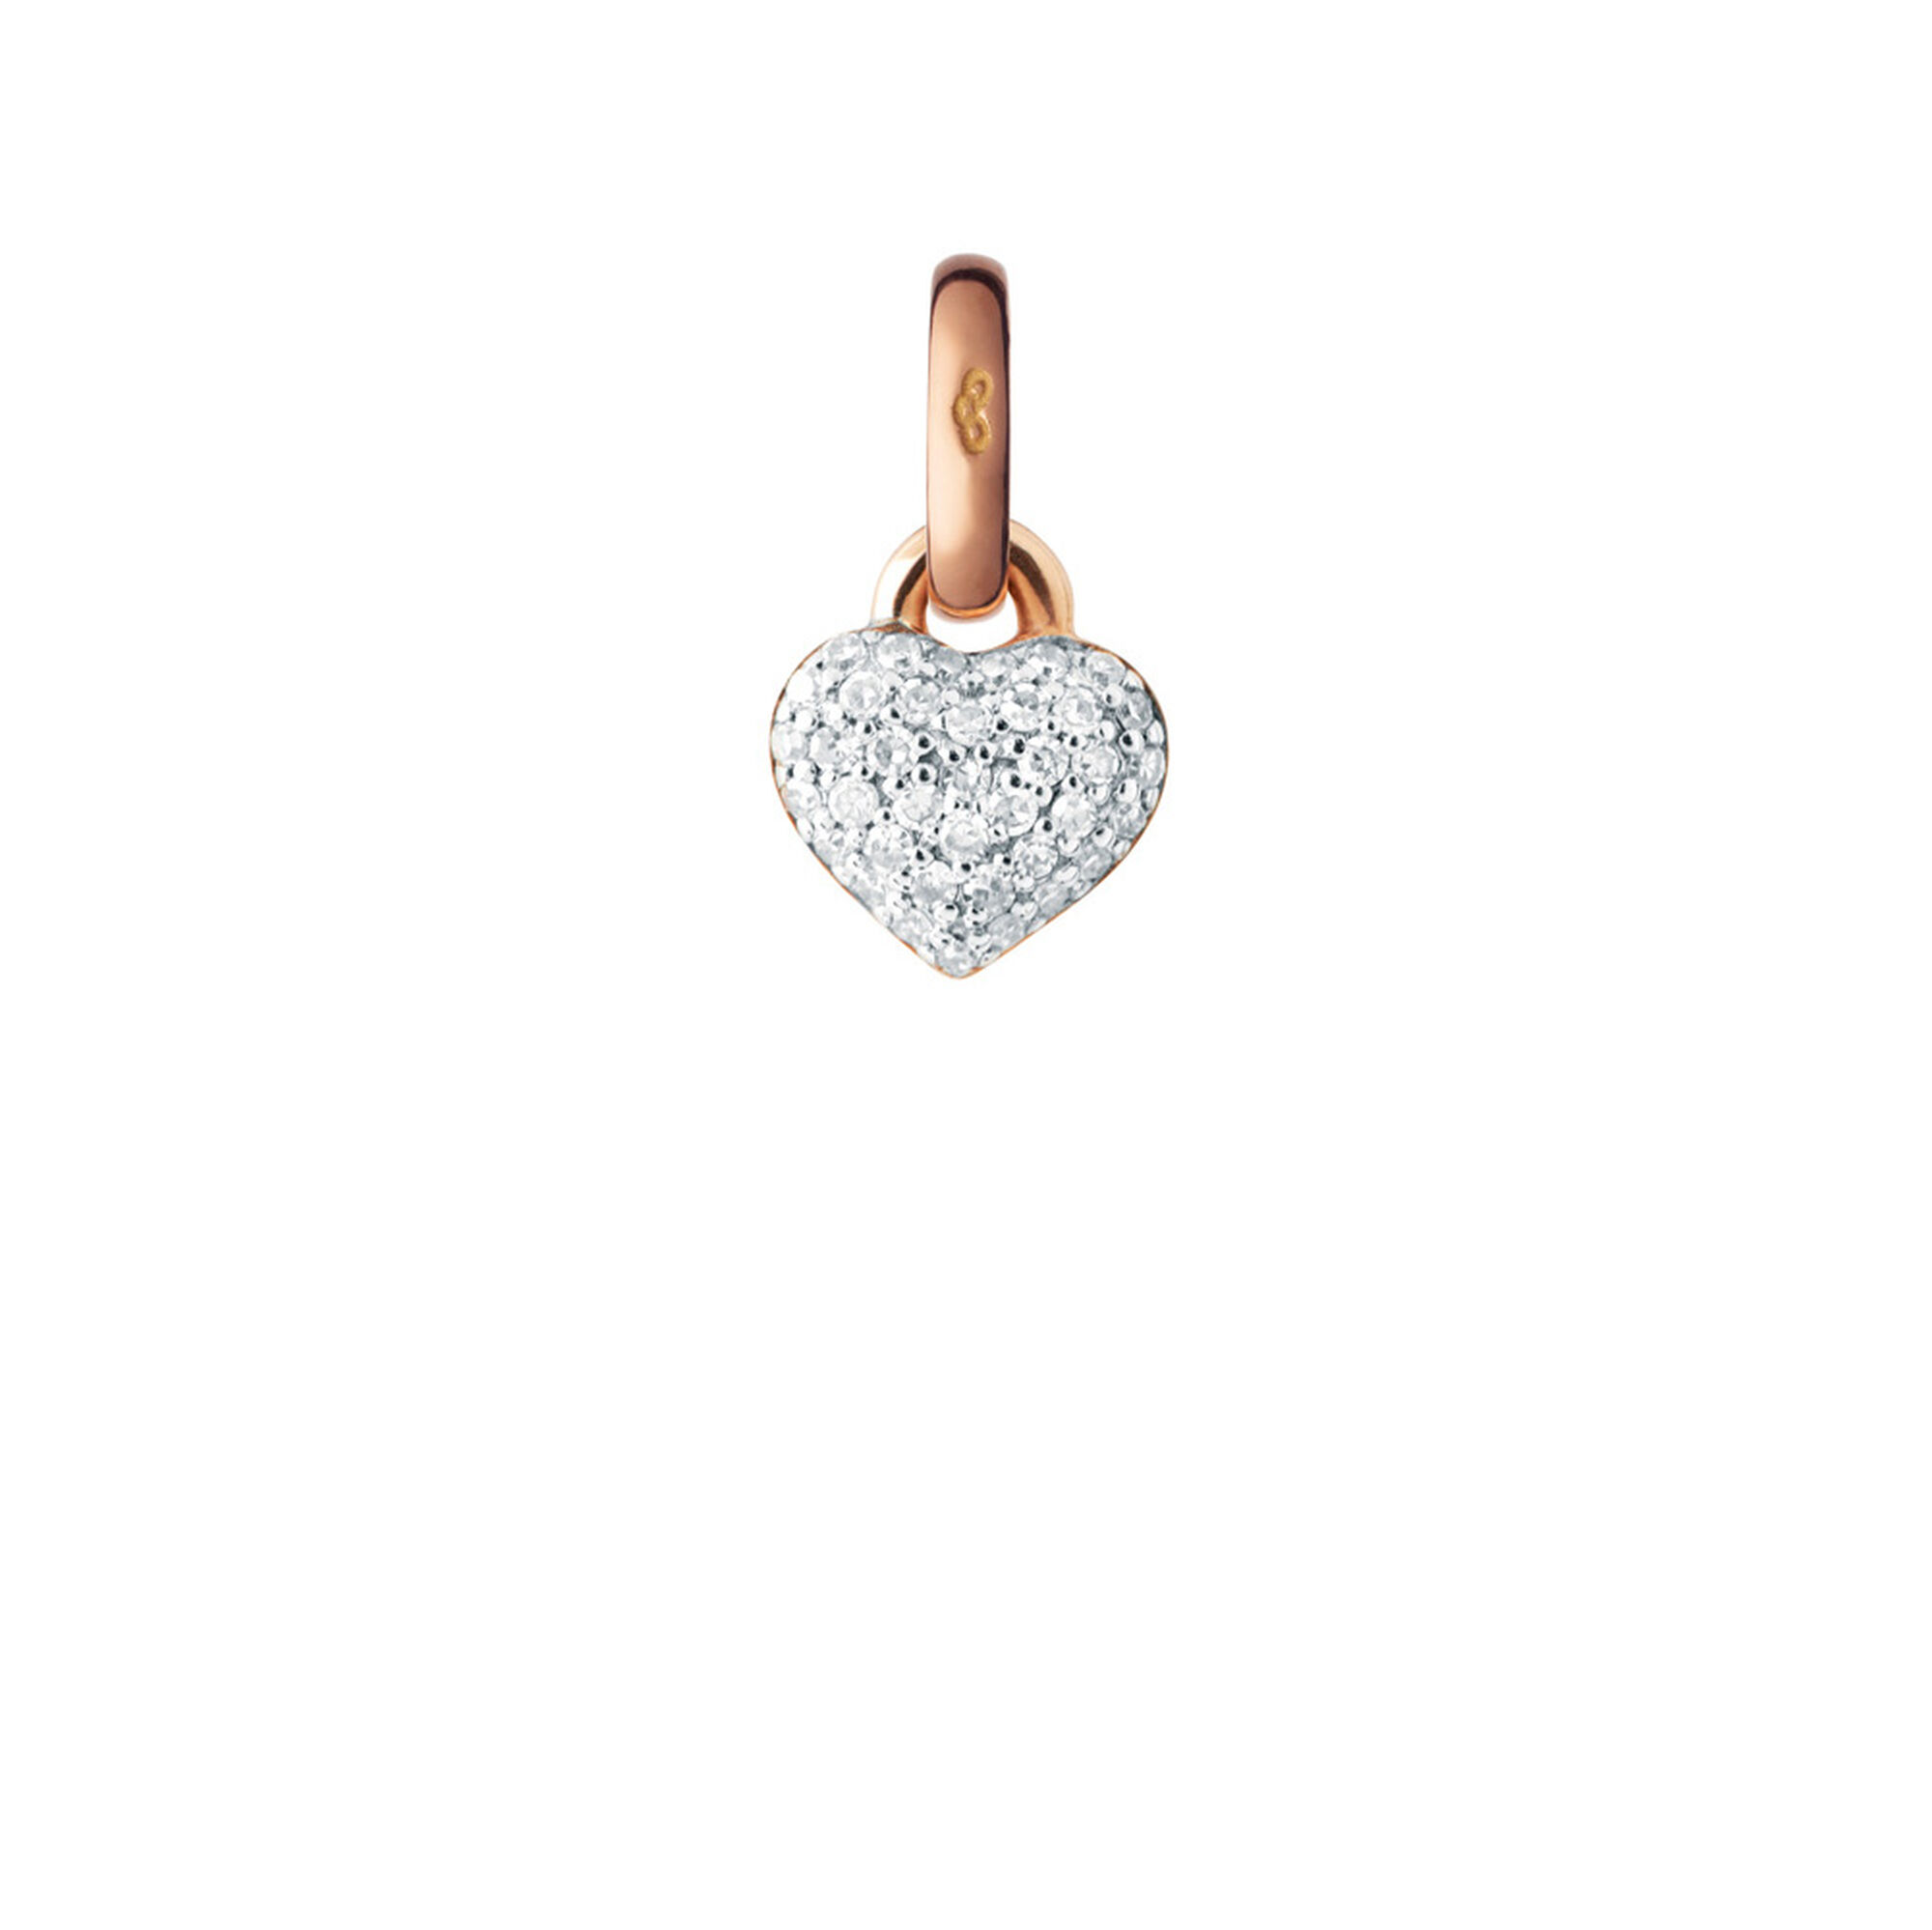 g necklace children sterling initai silver mini bk cz gold with plated heart initial collections mhd n